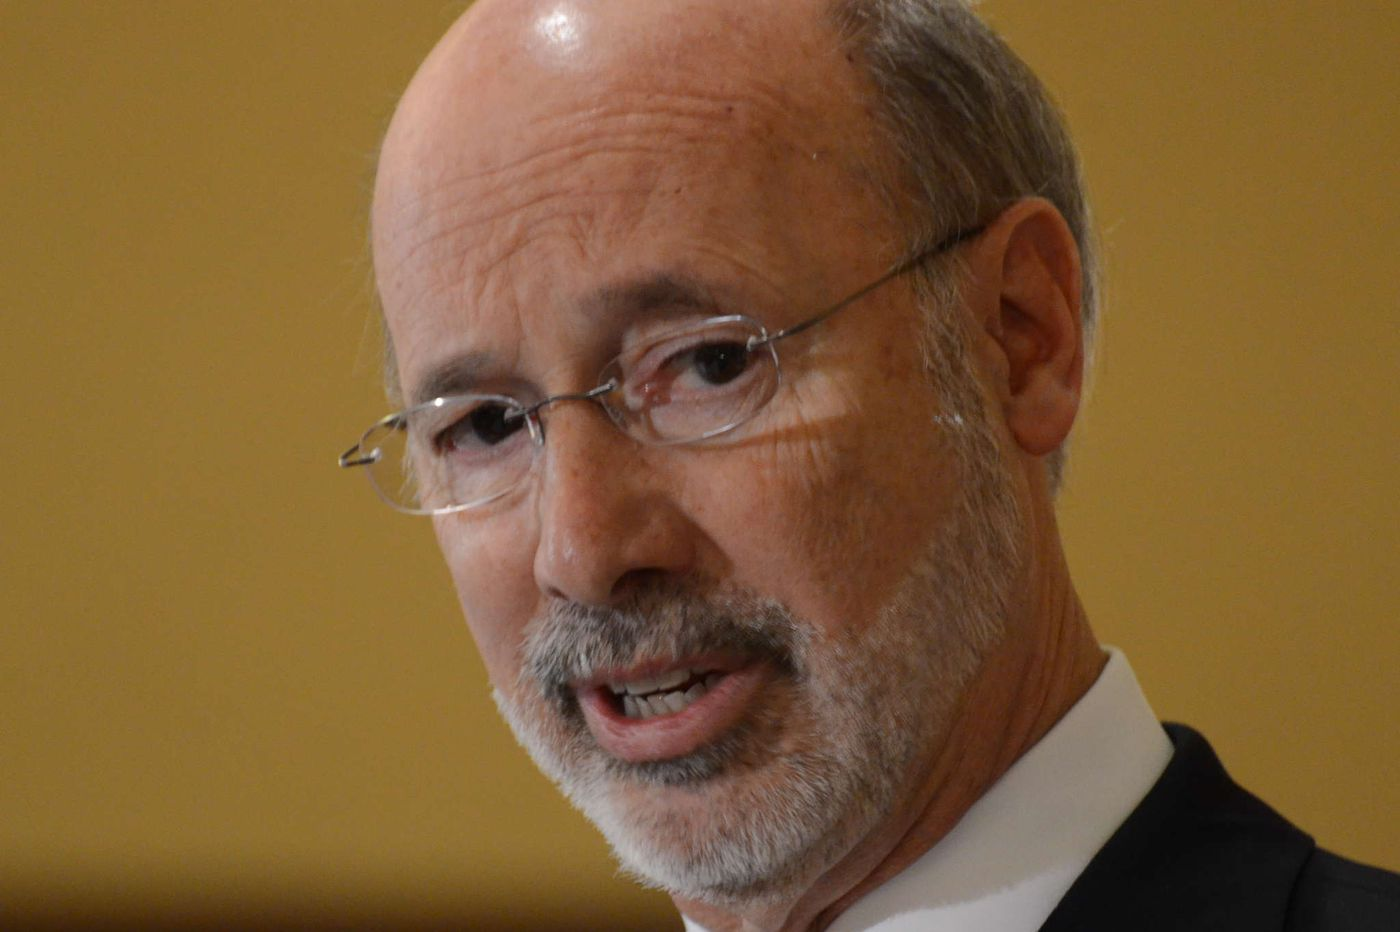 A chat with Gov. Wolf on his hopes and goals for the new year, his final term (and his aversion to campaigns) | John Baer